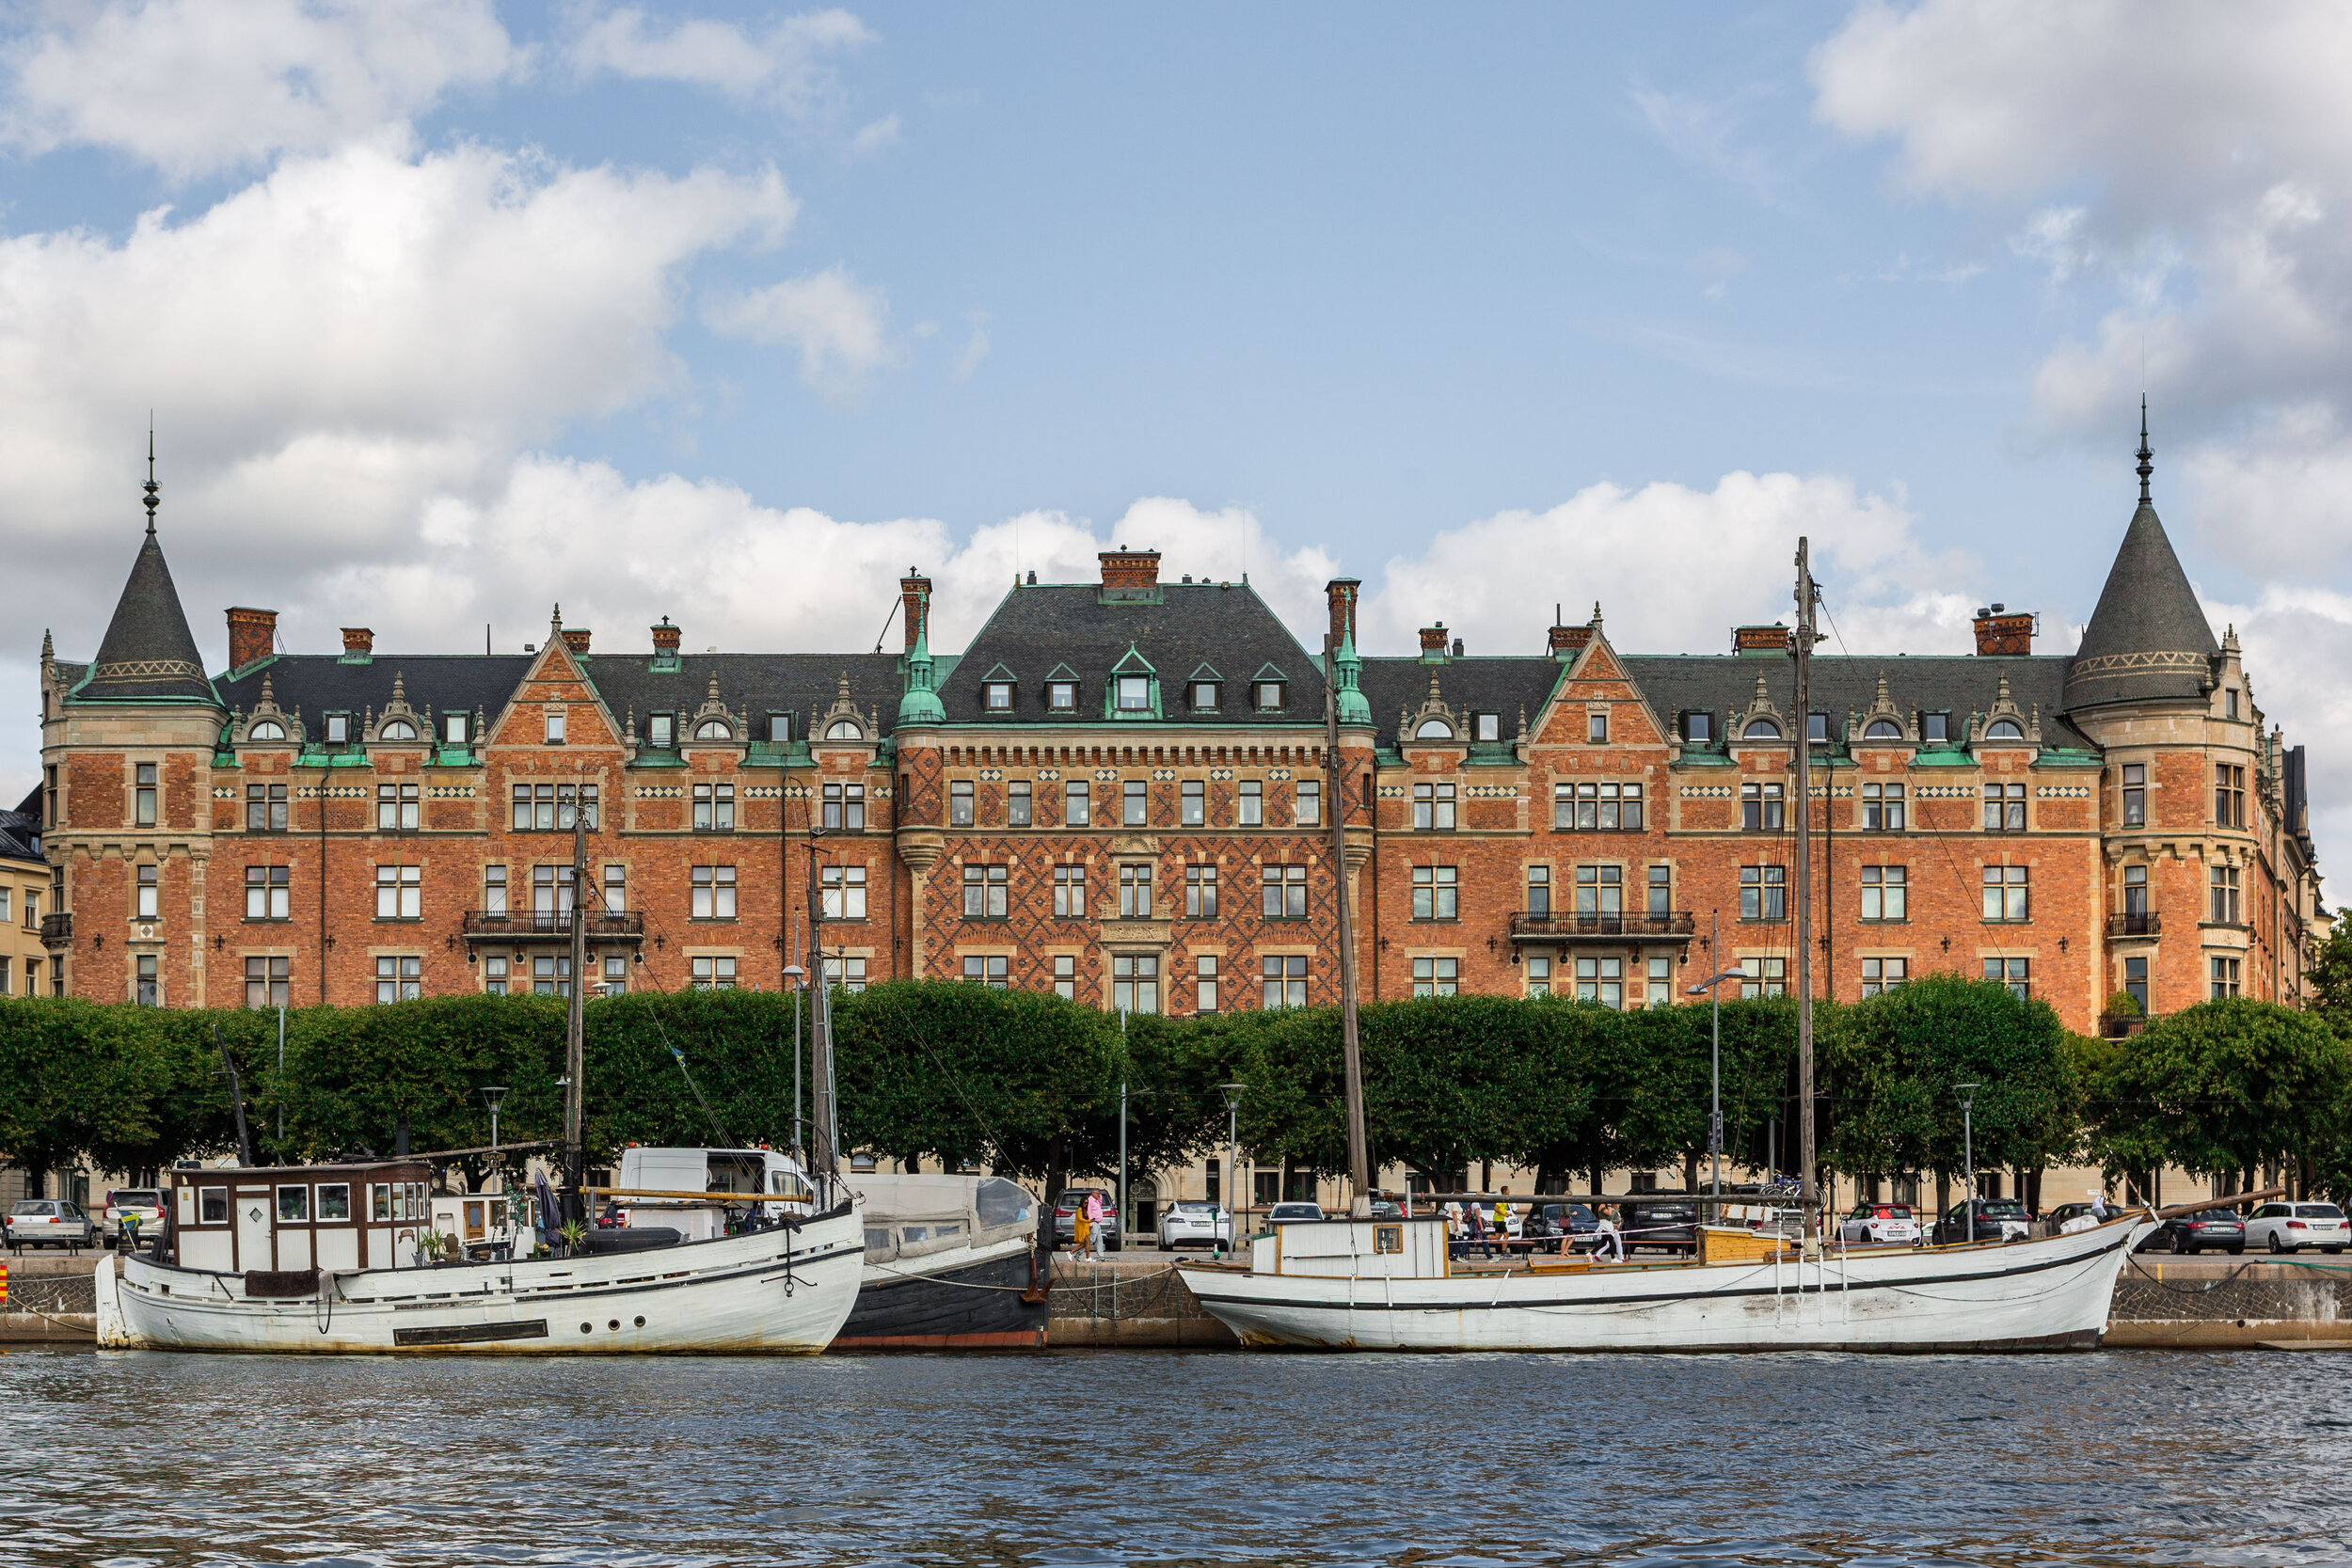 Stockholm by boat